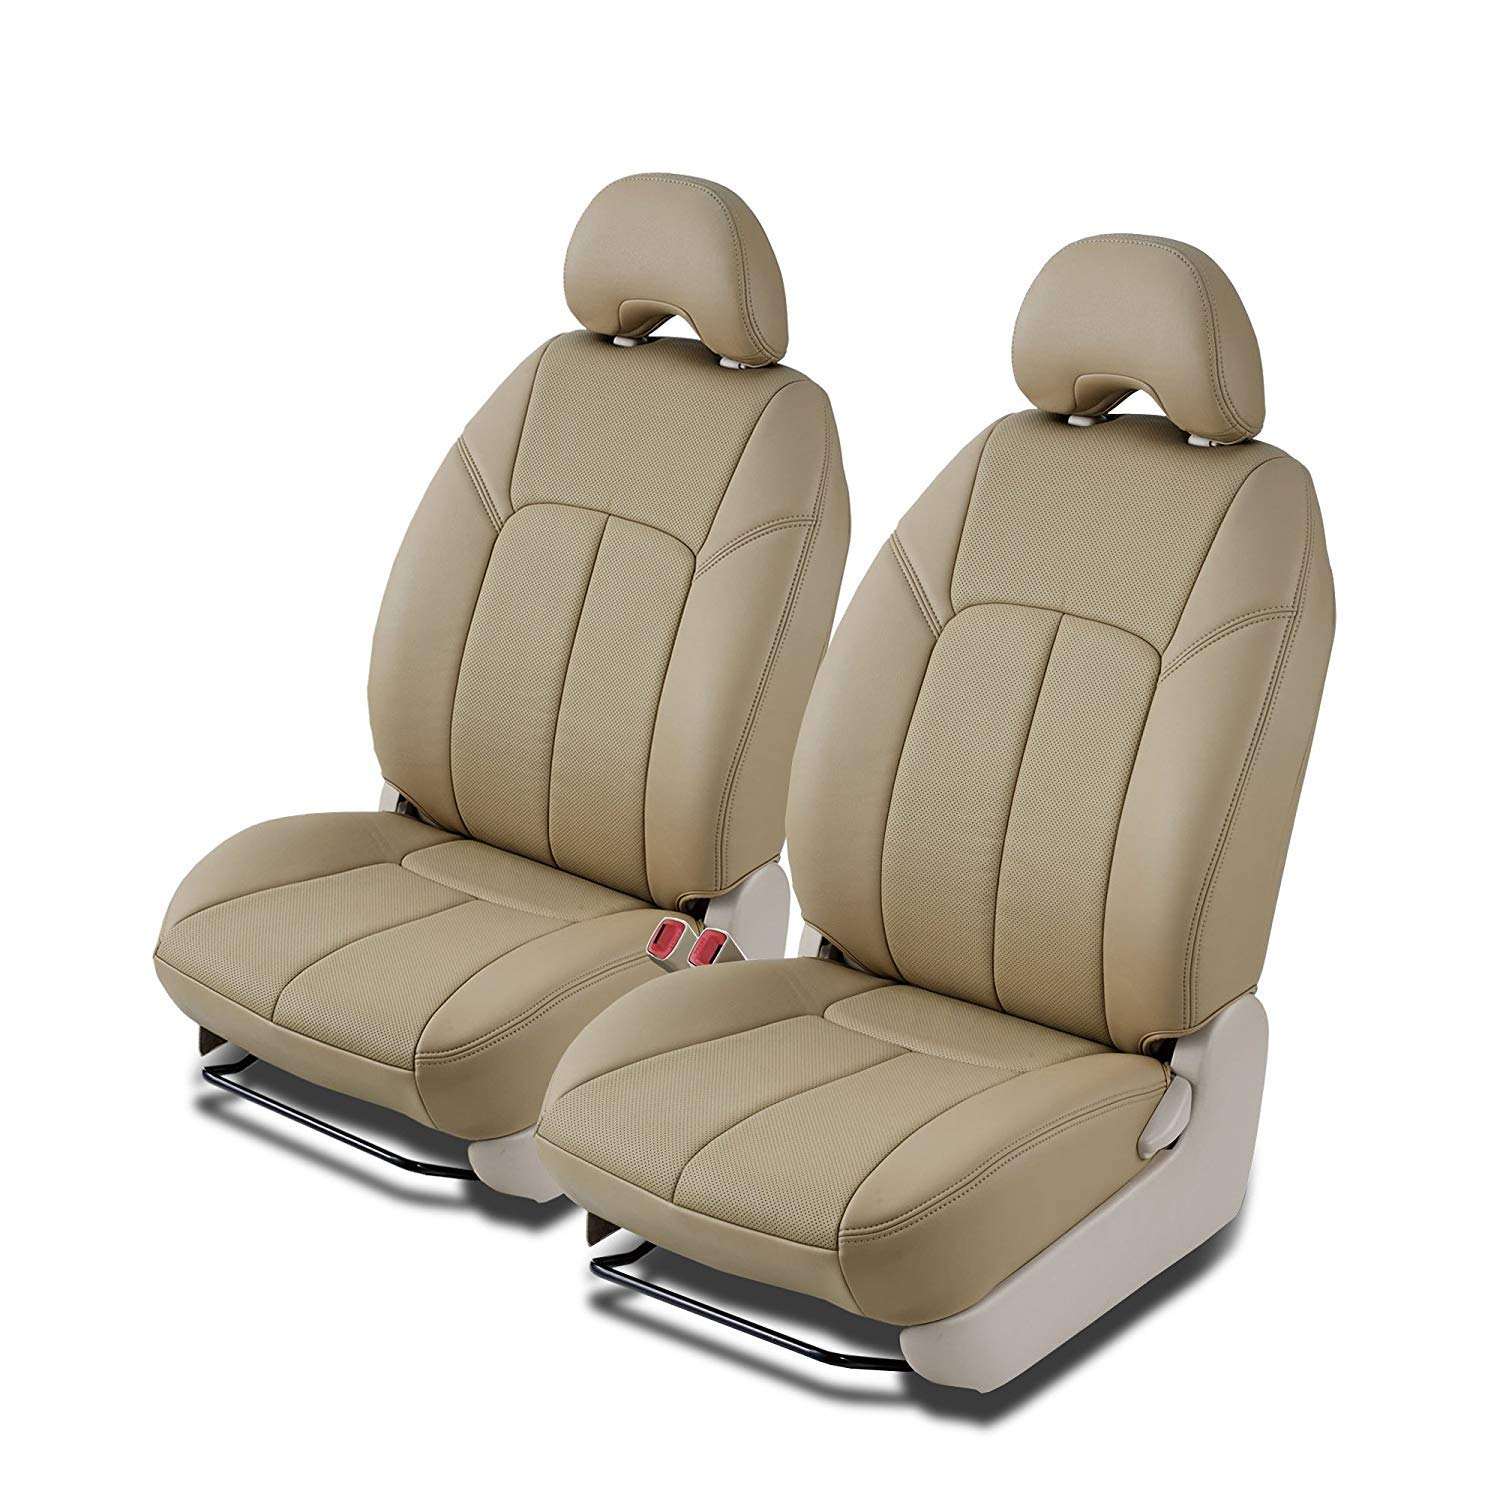 Clazzio 722331tann Tan Leather Front Row Seat Cover for Ford F150 Super Cab